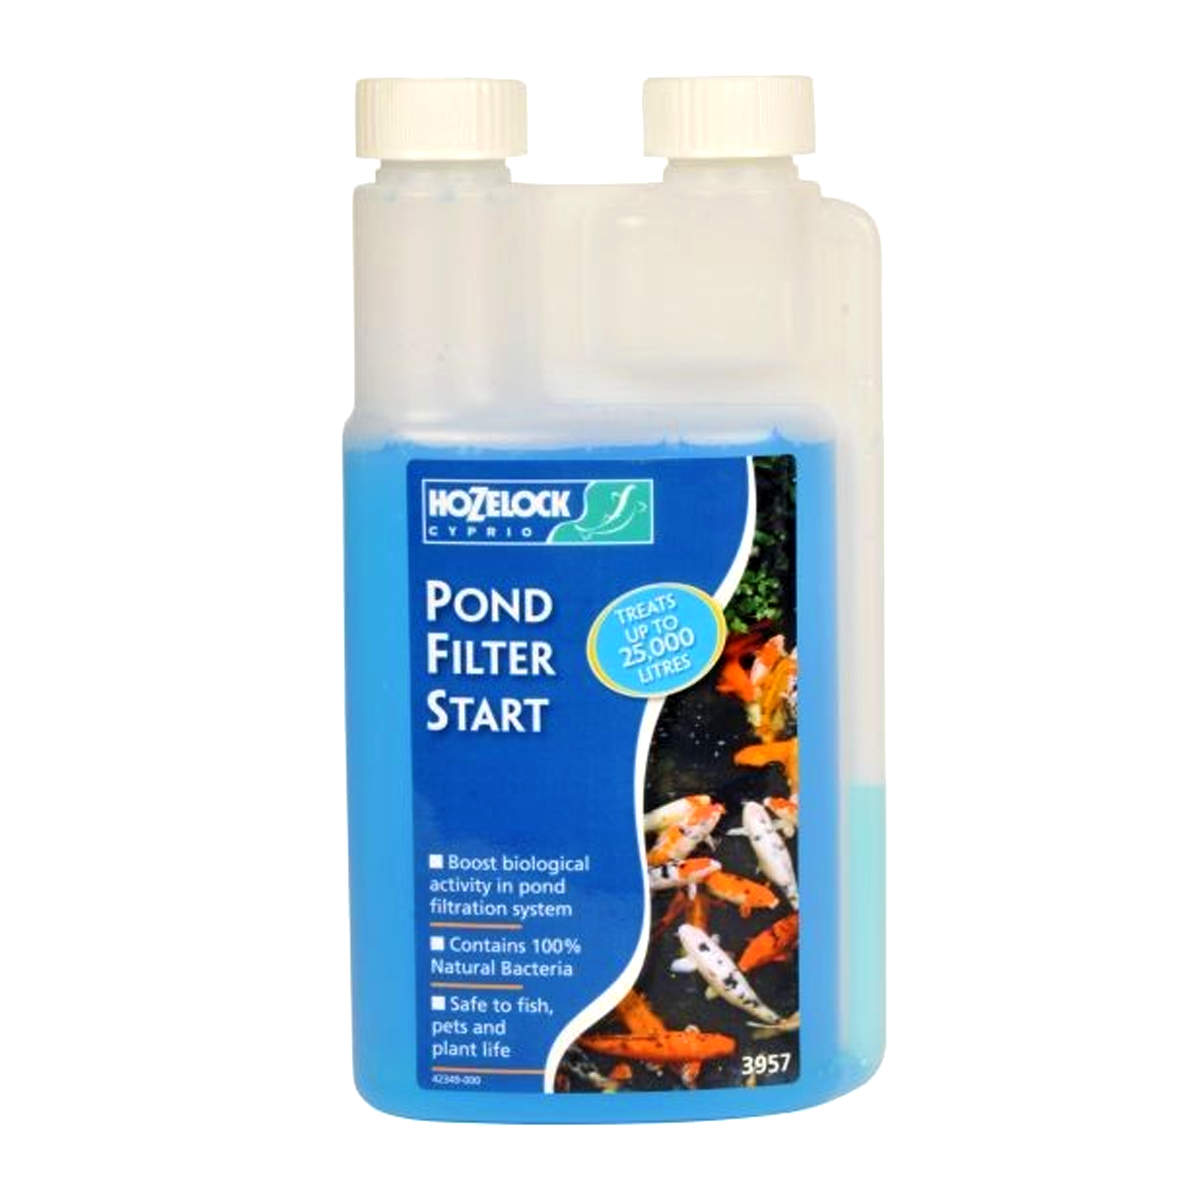 500ml pond filter start hozelock